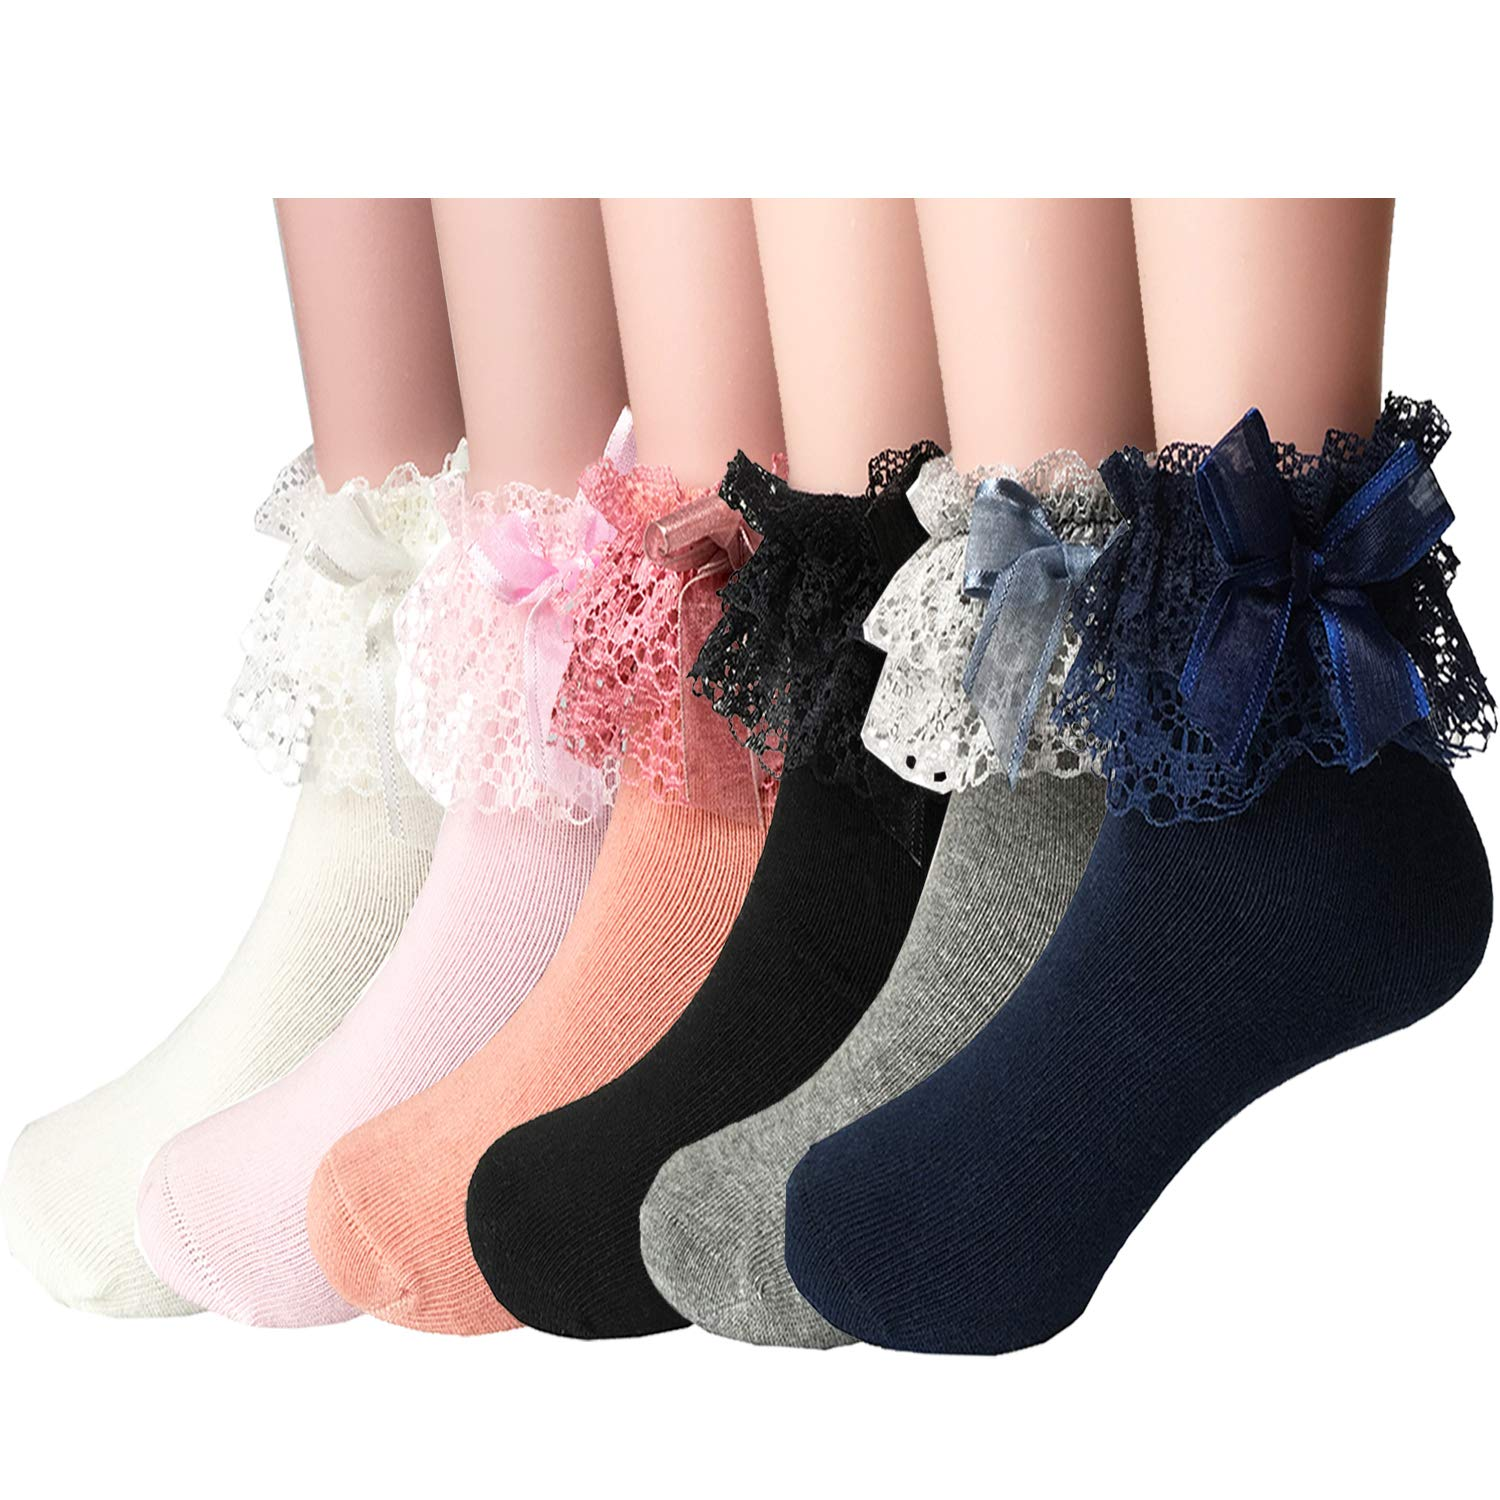 BILLSTYLE 7-9 yrs Girl's Sweet Bowknot Lace Trim Ruffle Cotton Low Cut Socks 6 Pairs